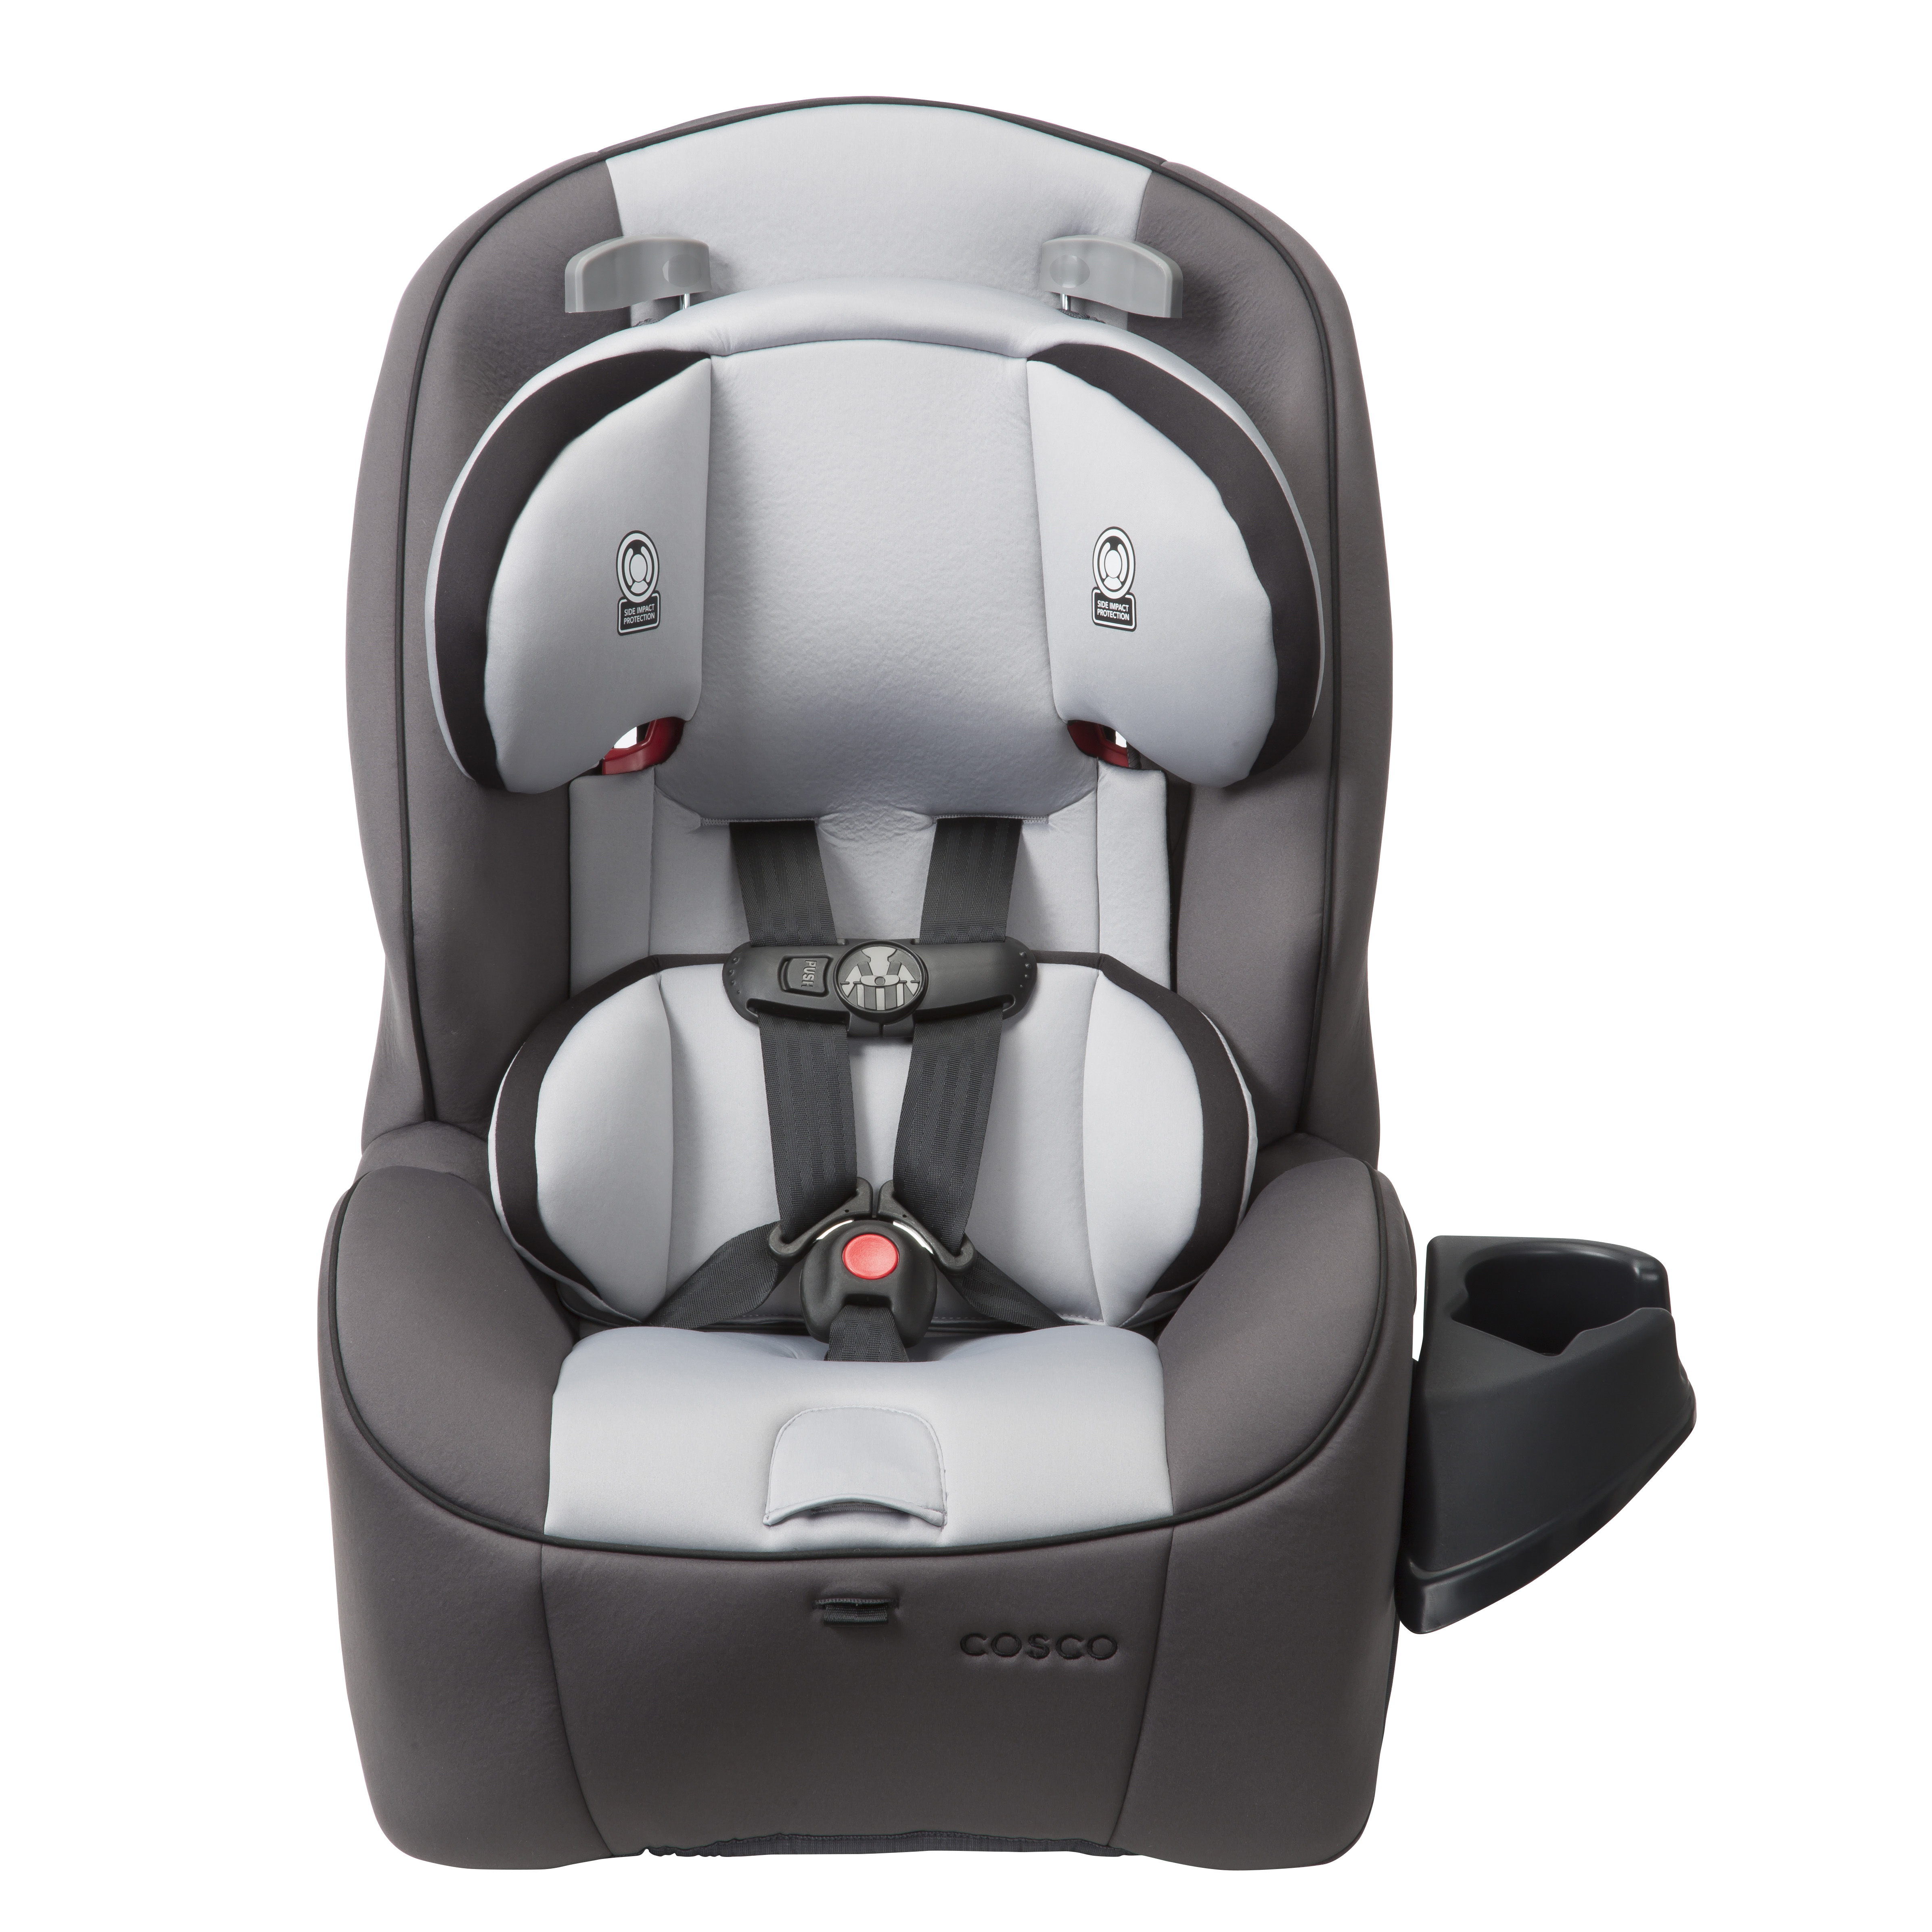 Cosco Easy Elite 3-in-1 Convertible Car Seat, Choose Your Pattern